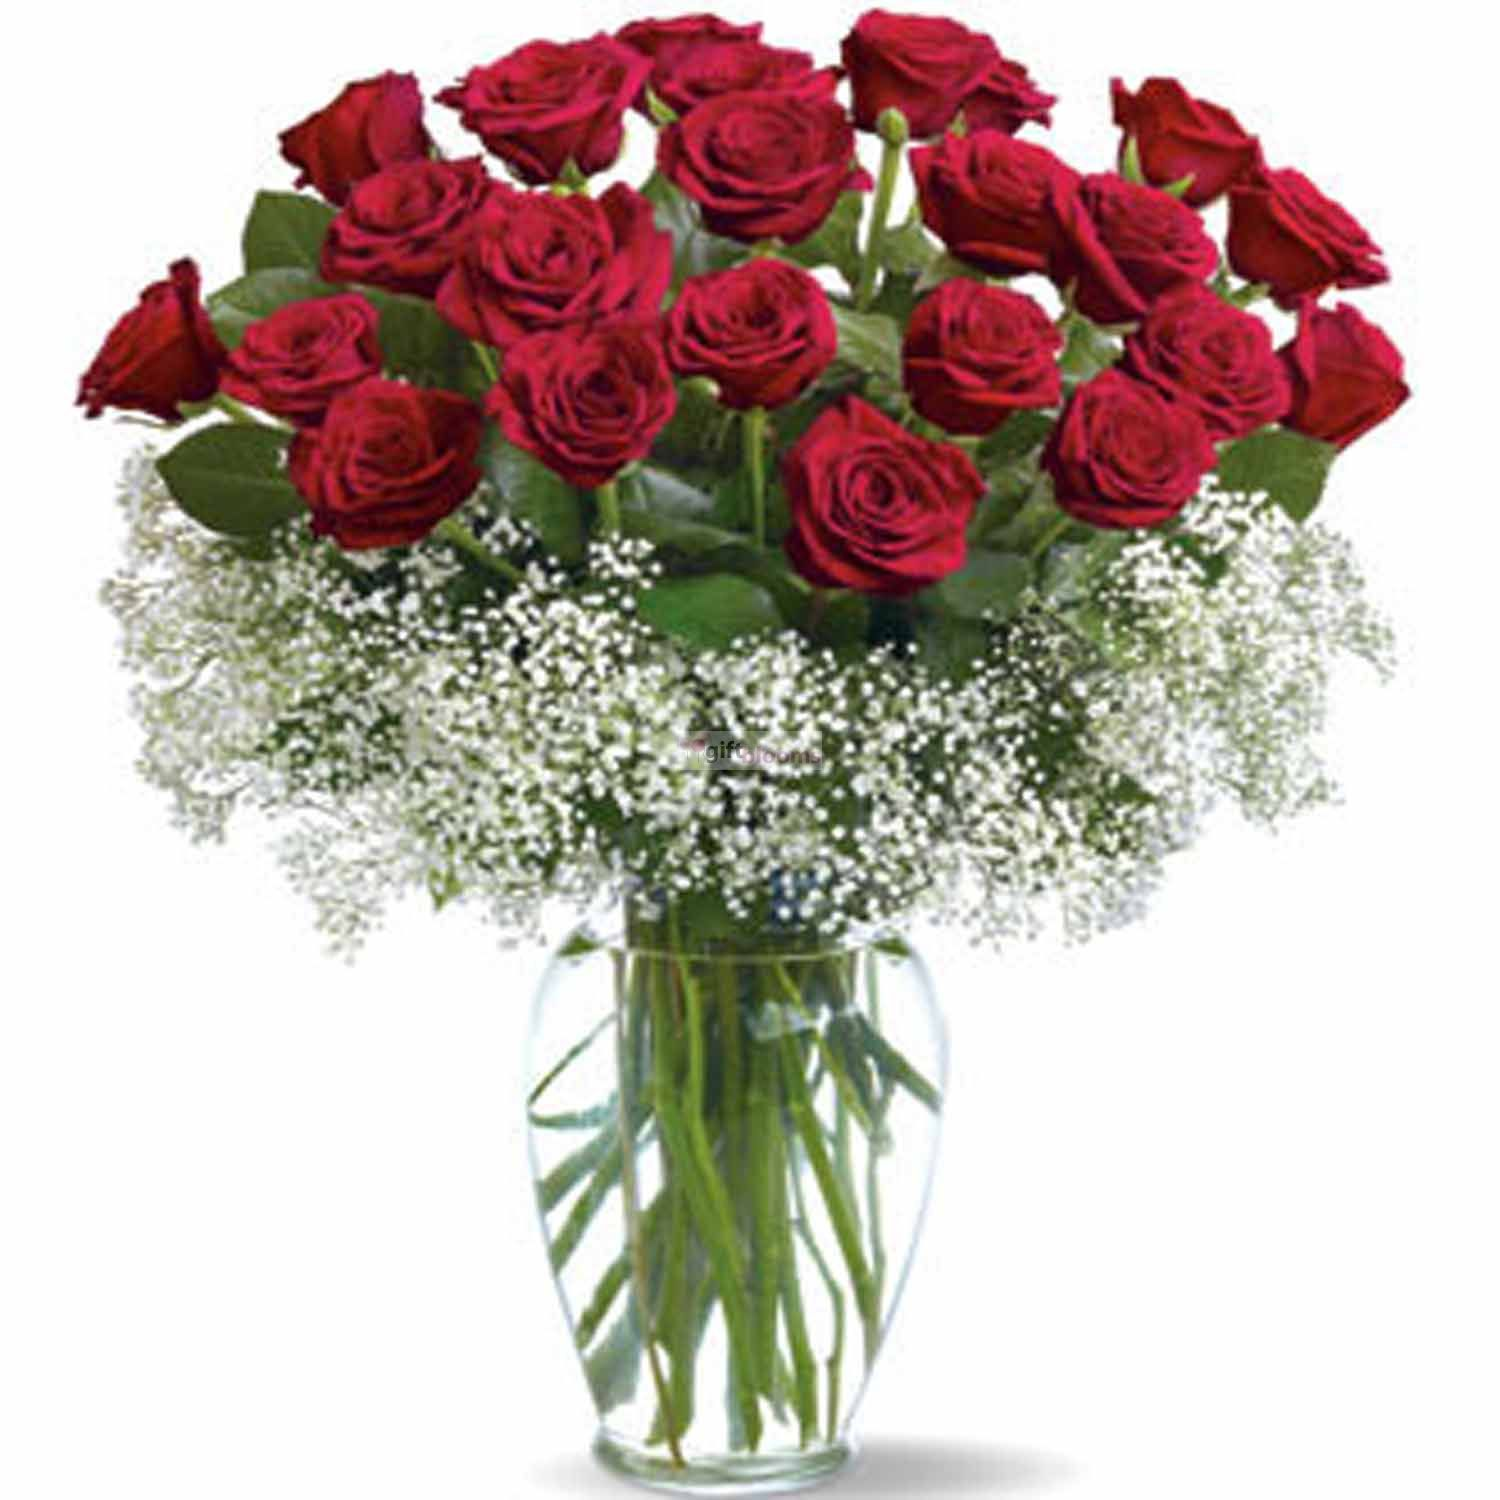 Send 24 Red Roses Vase To Your Love On This